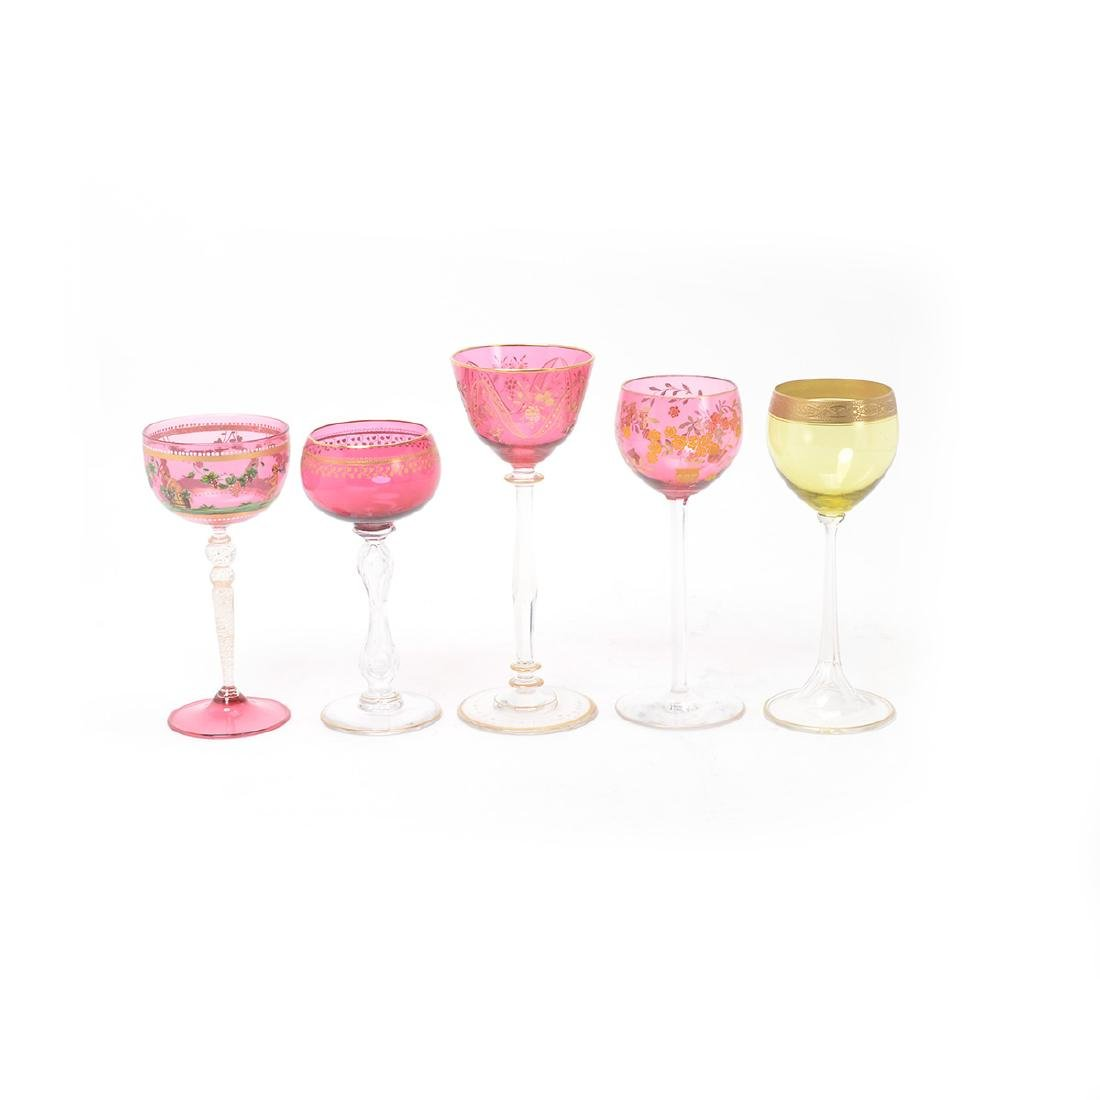 Twenty Bohemian Glass Stemware, Most with Painted - 2